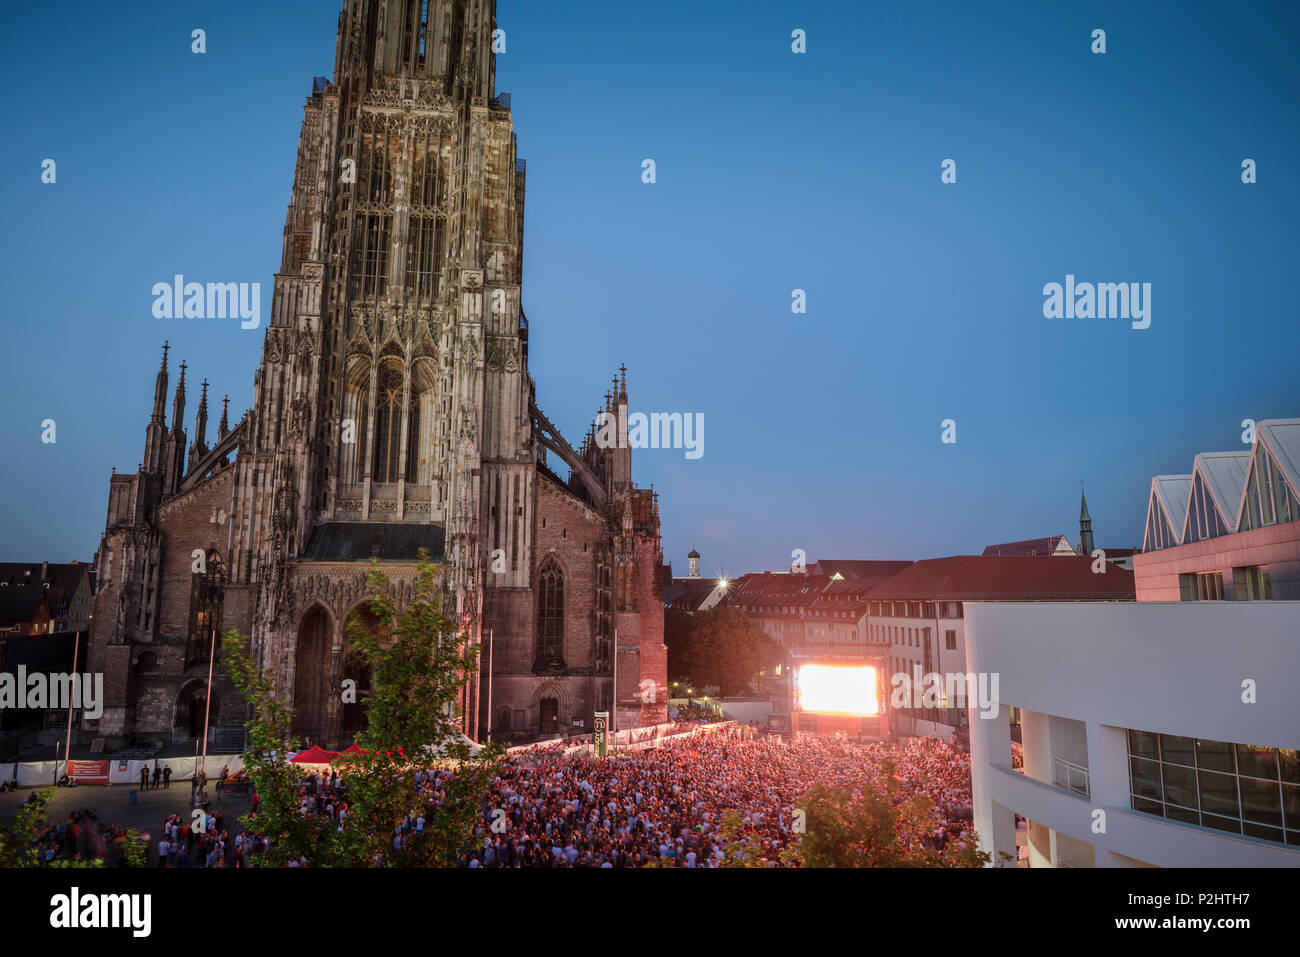 public viewing during the football world cup 2014, Ulm on the Danube River, Swabian Alb, Baden-Wuerttemberg, Germany - Stock Image